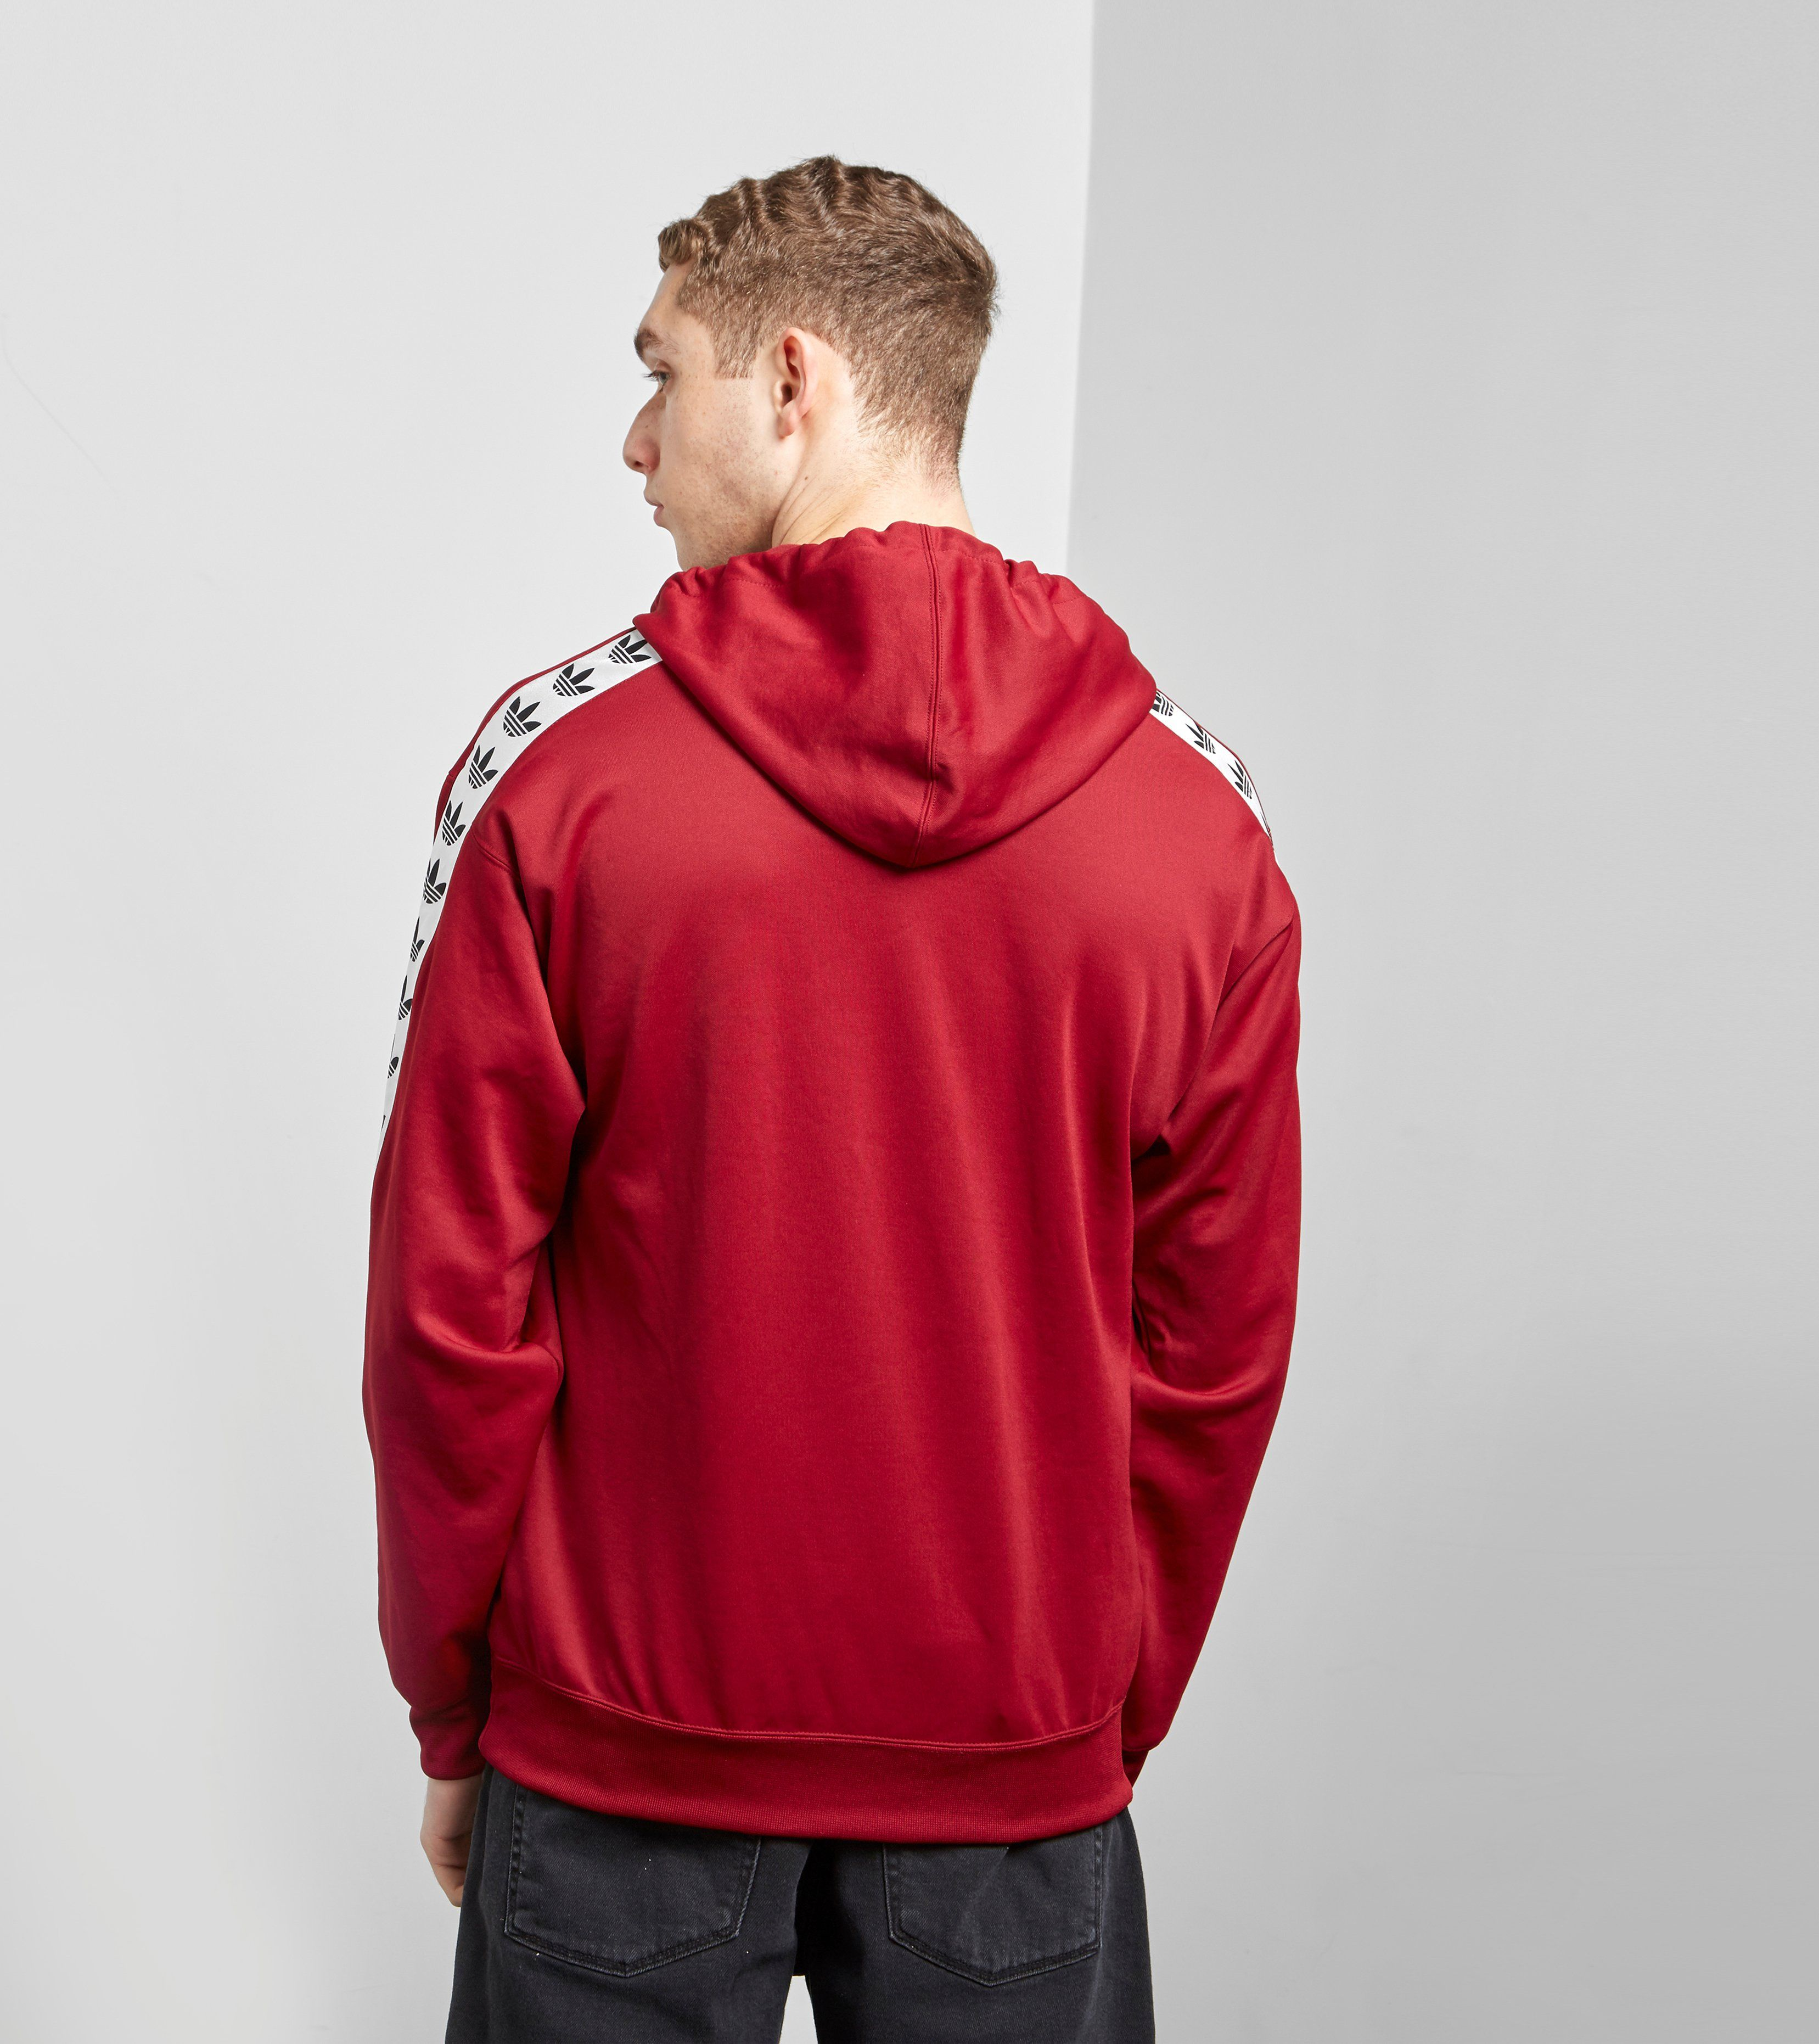 adidas Originals Overhead Tape Hoody - size? Exclusive